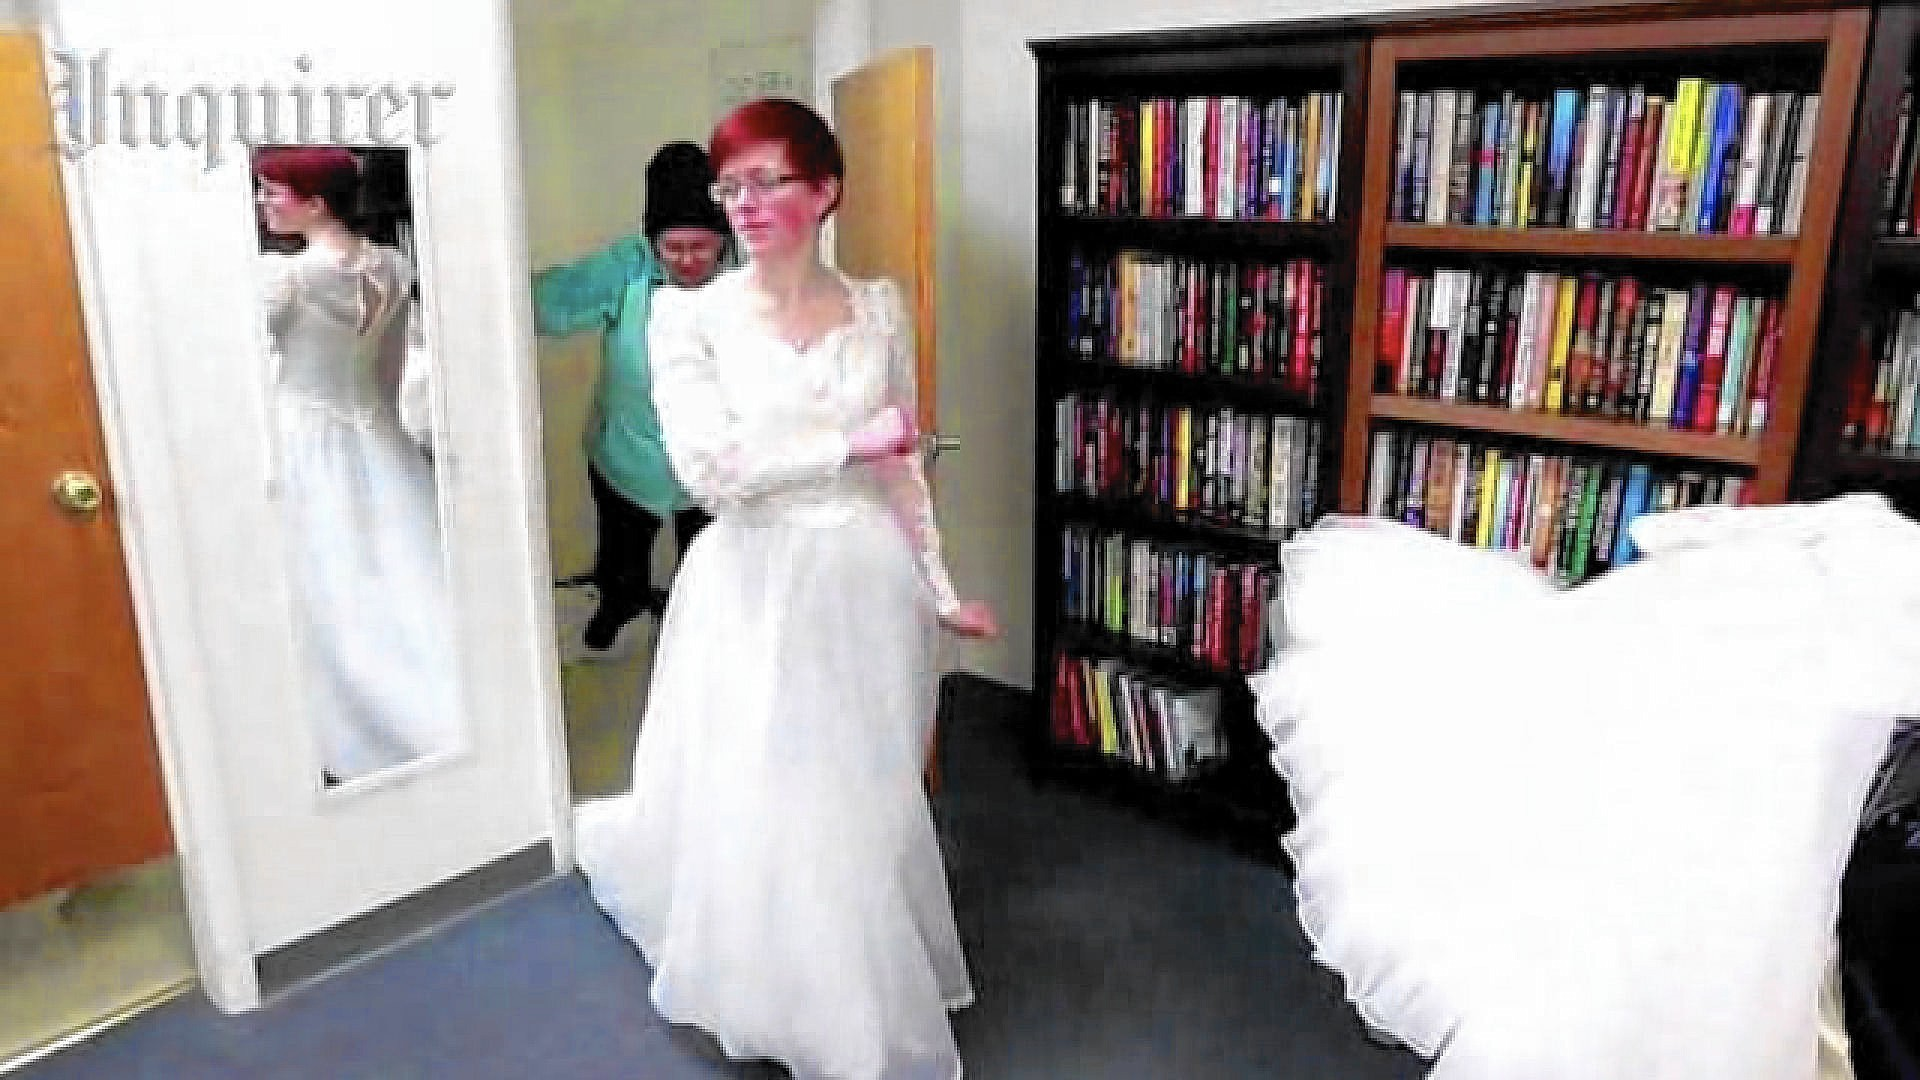 Brides brave cold for Goodwill\'s Valentine\'s Day gown sale - The ...